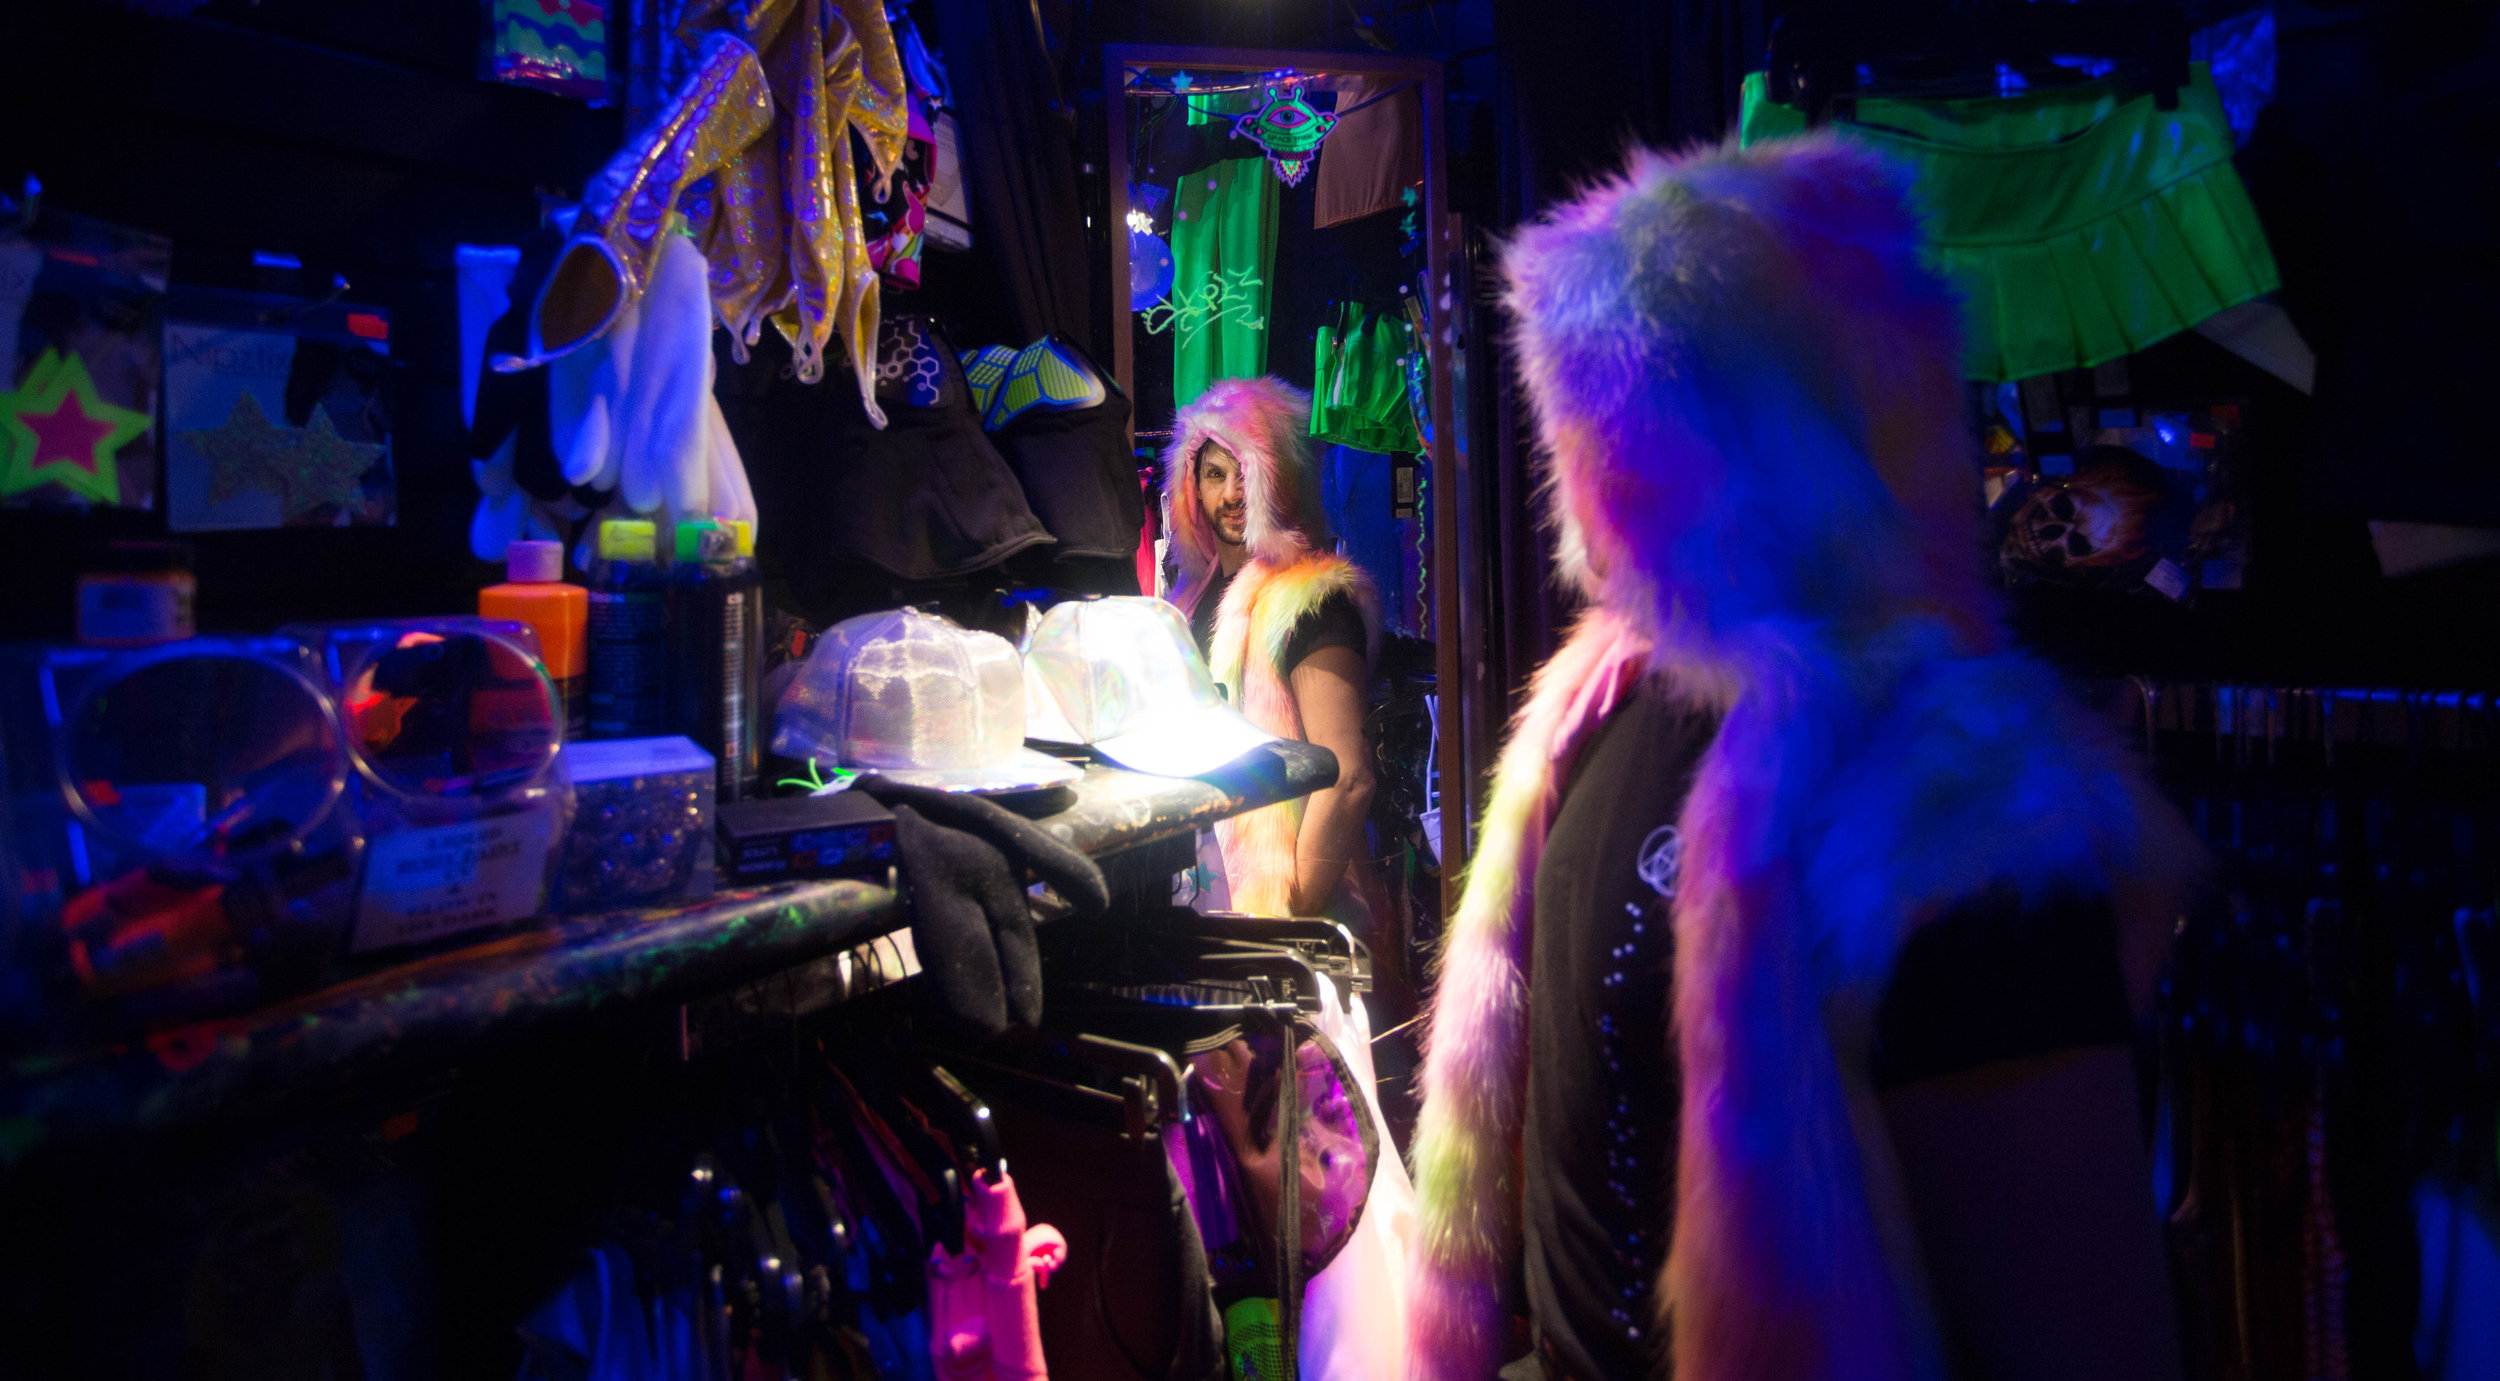 Adam Pyrate visits Goth Renaissance from Baltimore to check out new gear for his goth/trip wardrobe. In New York on Saturday, March 31, 2019.    Photo credit to Wes Parnell for EST.